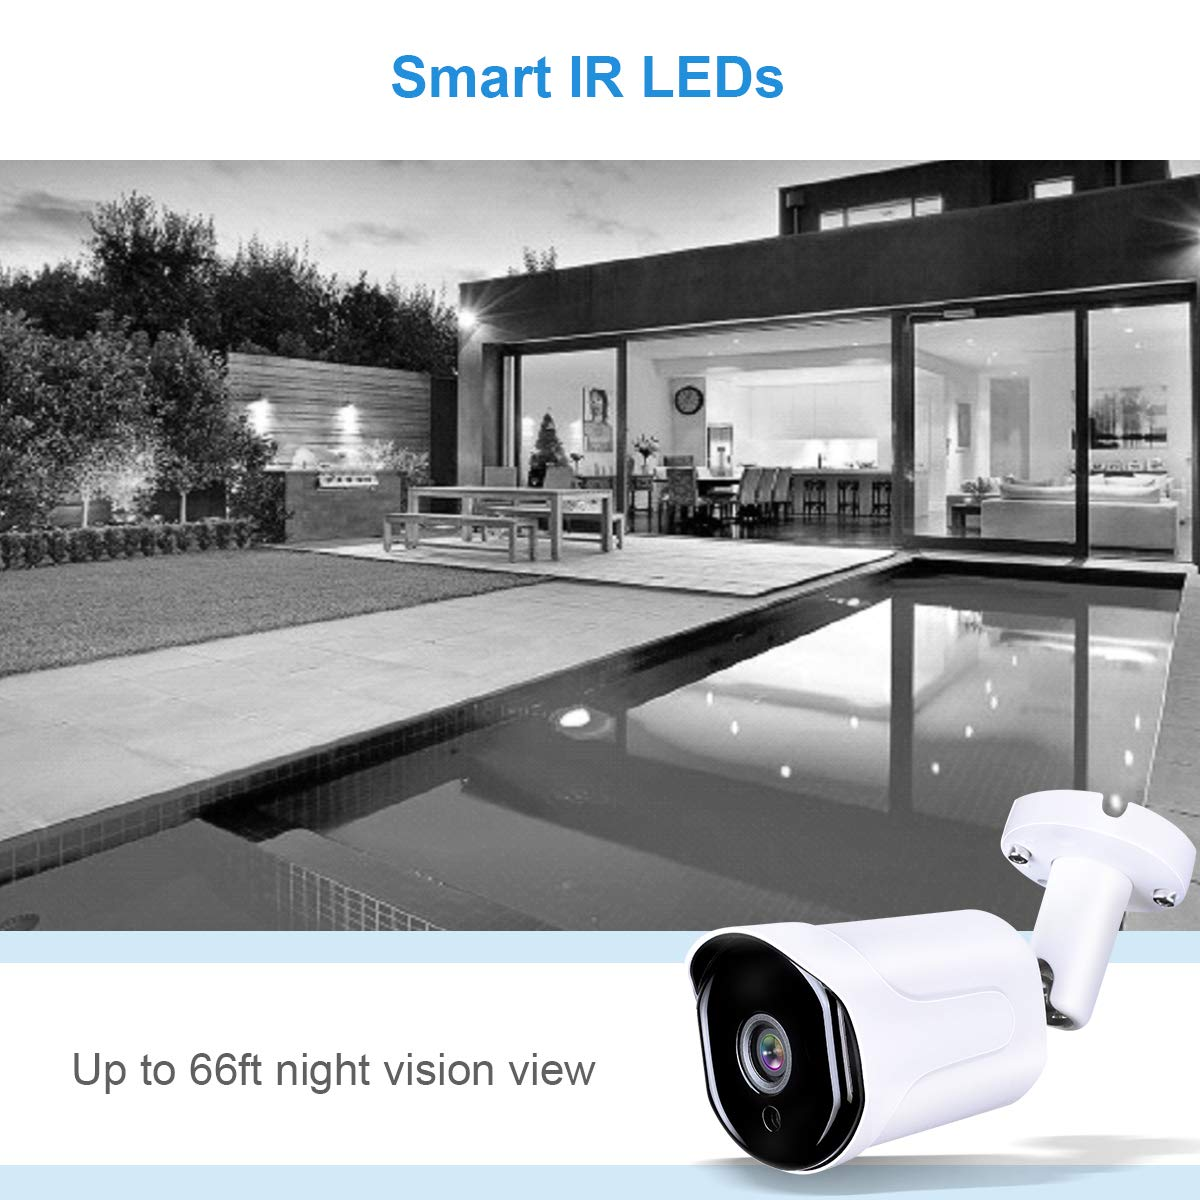 HD-CVI//TVI//AHD//960H HDView 2.4MP 4-in-1 Bullet Security Camera 3.6mm Lens Weatherproof IP66 Smart IR Night Vision Anti IR Reflection 30fps@1080P COC OSD Outdoor CCTV Camera for Home Surveillance 864255